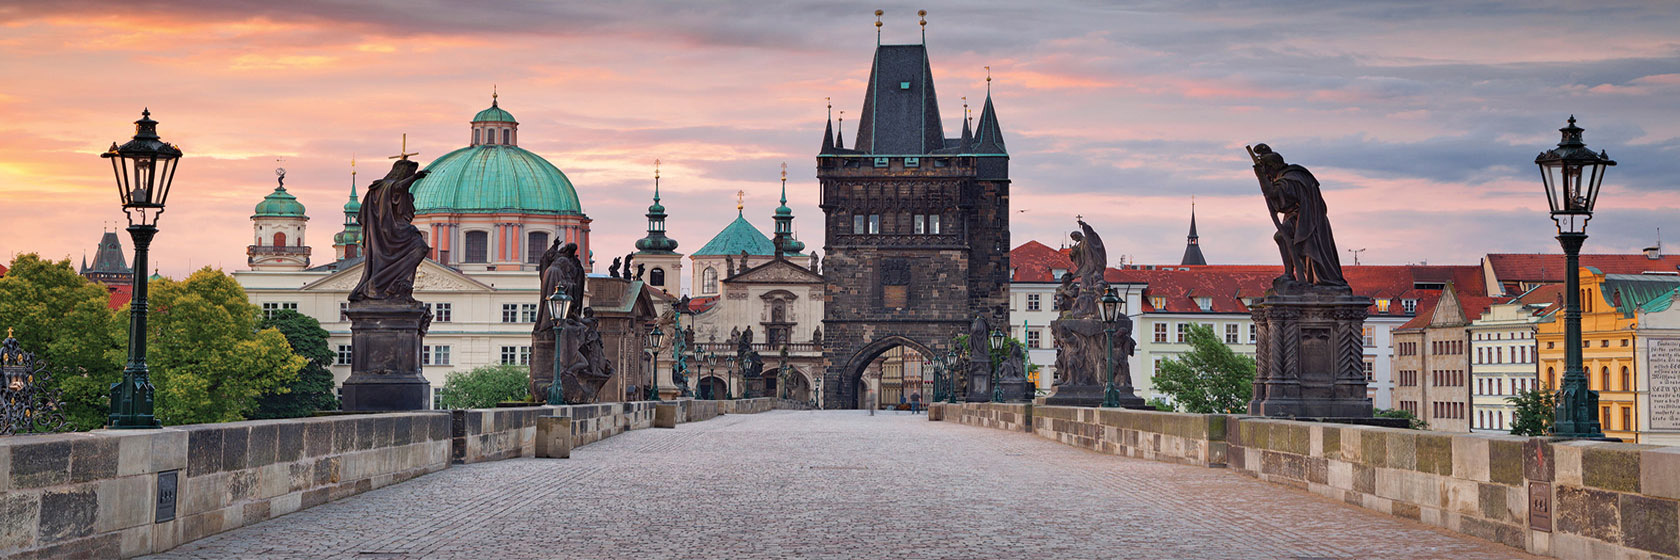 a-tale-of-three-cities-9-days-with-a-and-k-charles-bridge-prague